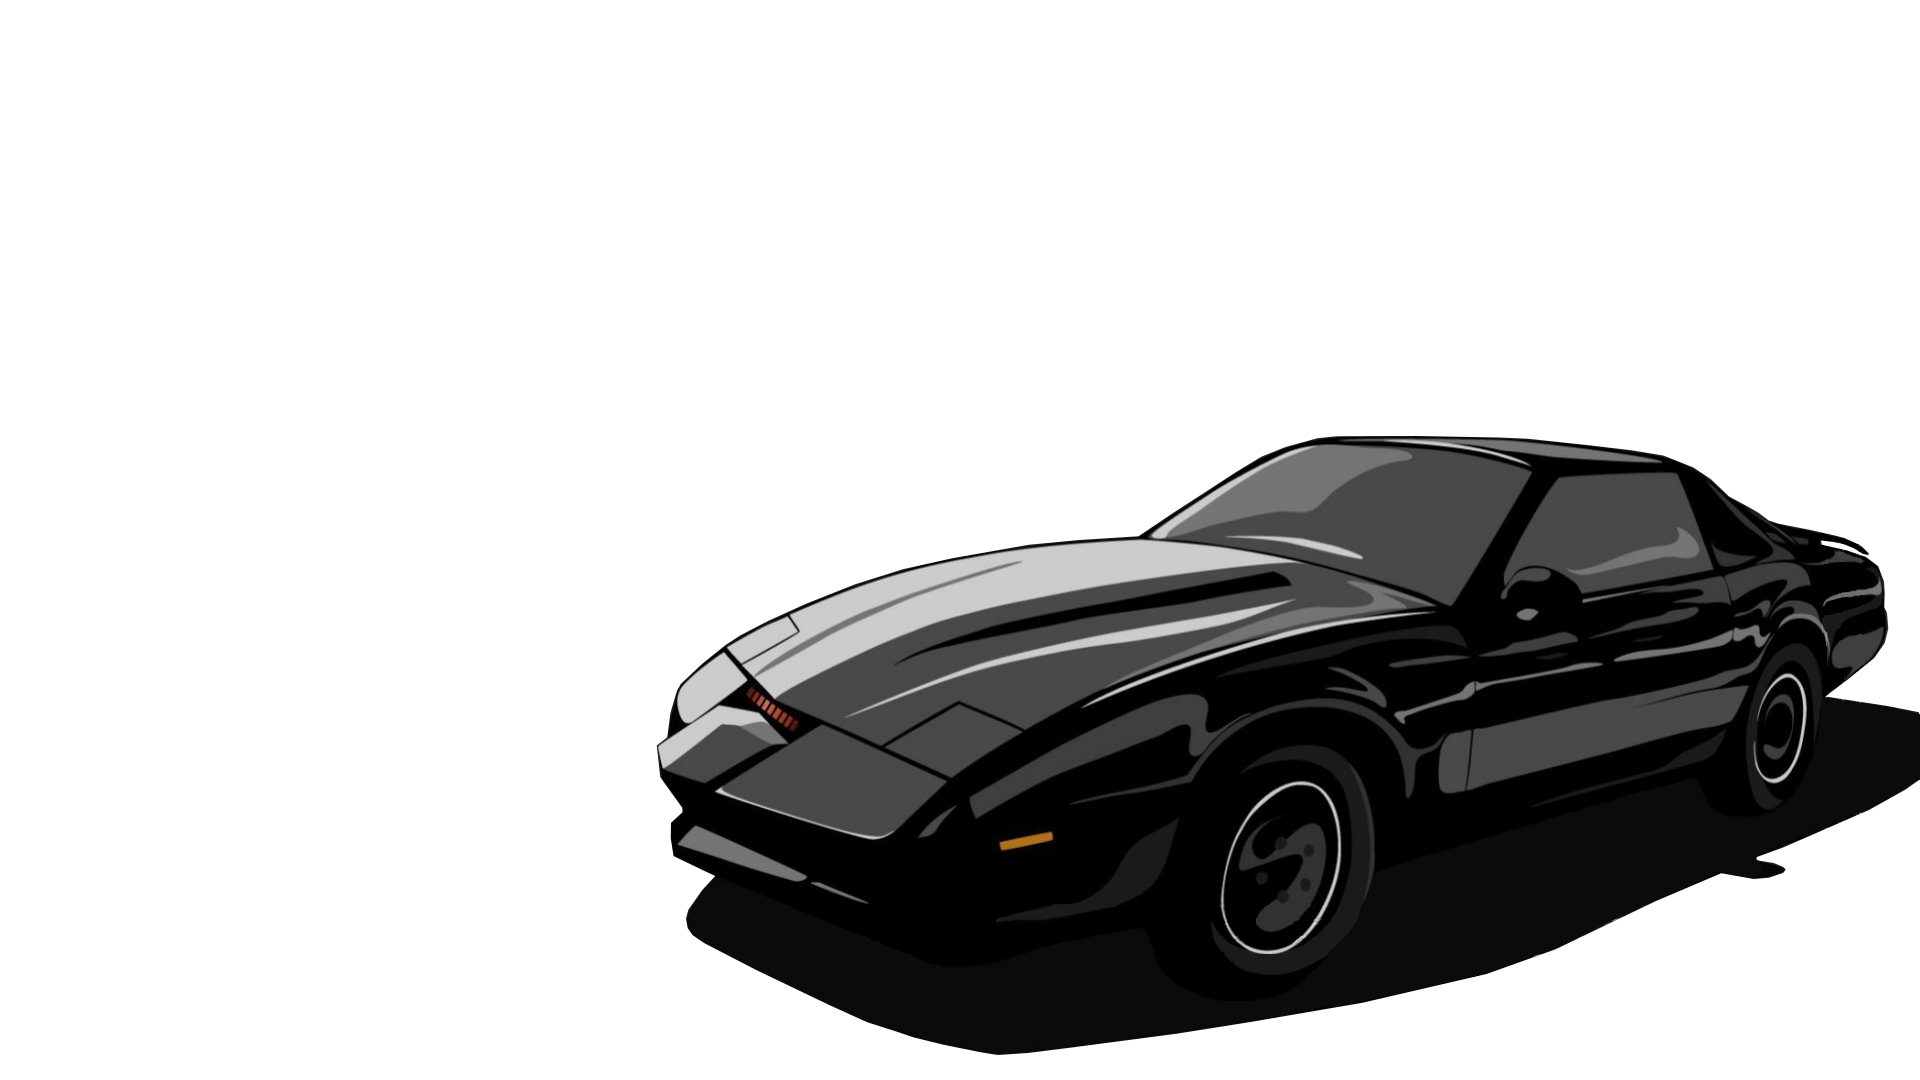 trans am knight rider HD Wallpaper